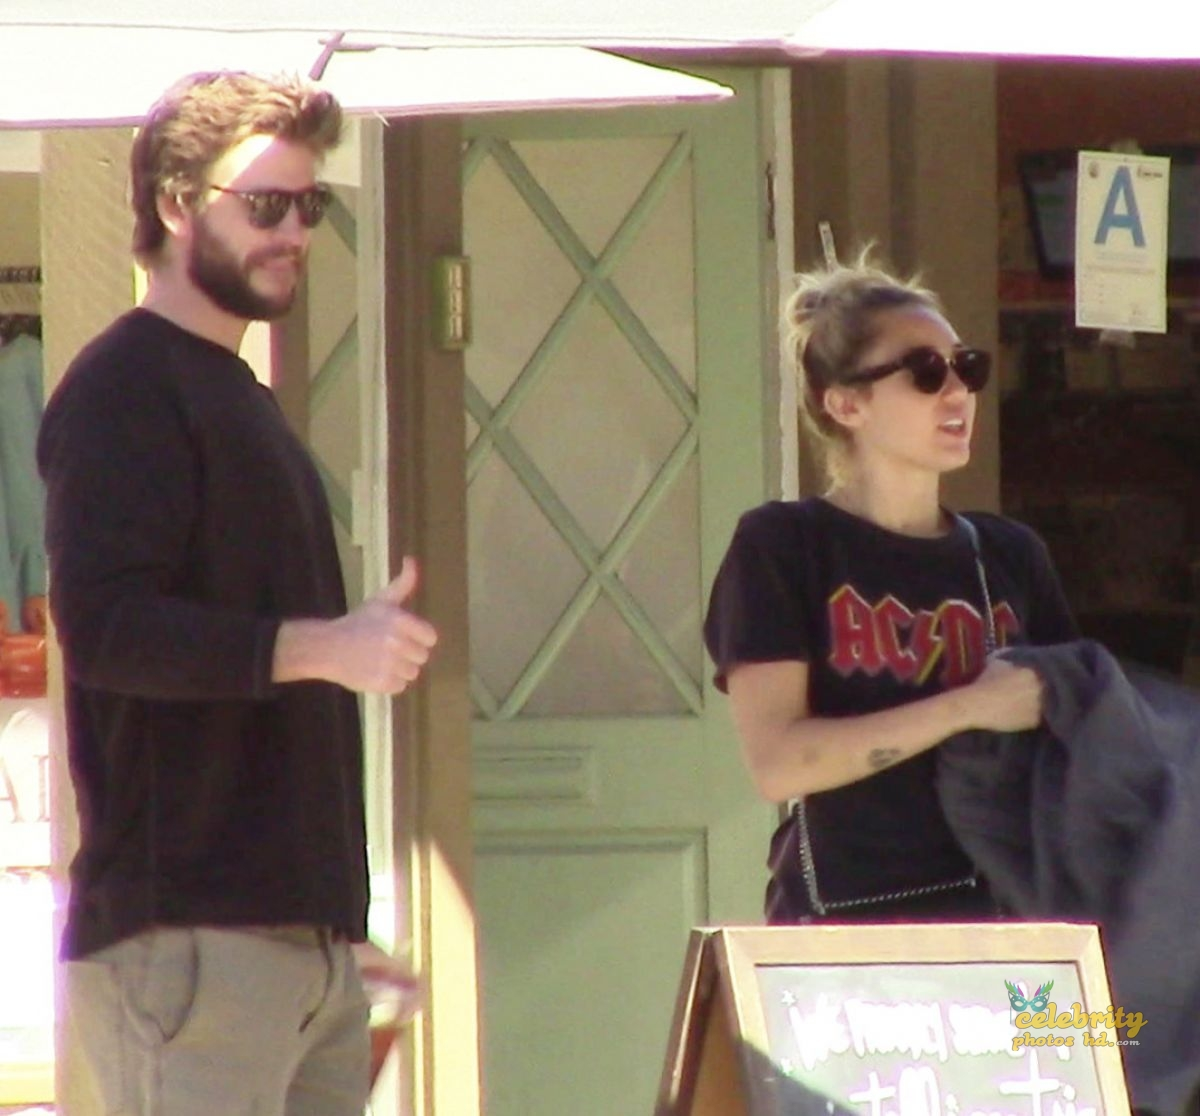 MILEY CYRUS and Liam Hemsworth Out for Lunch in Malibu (2)